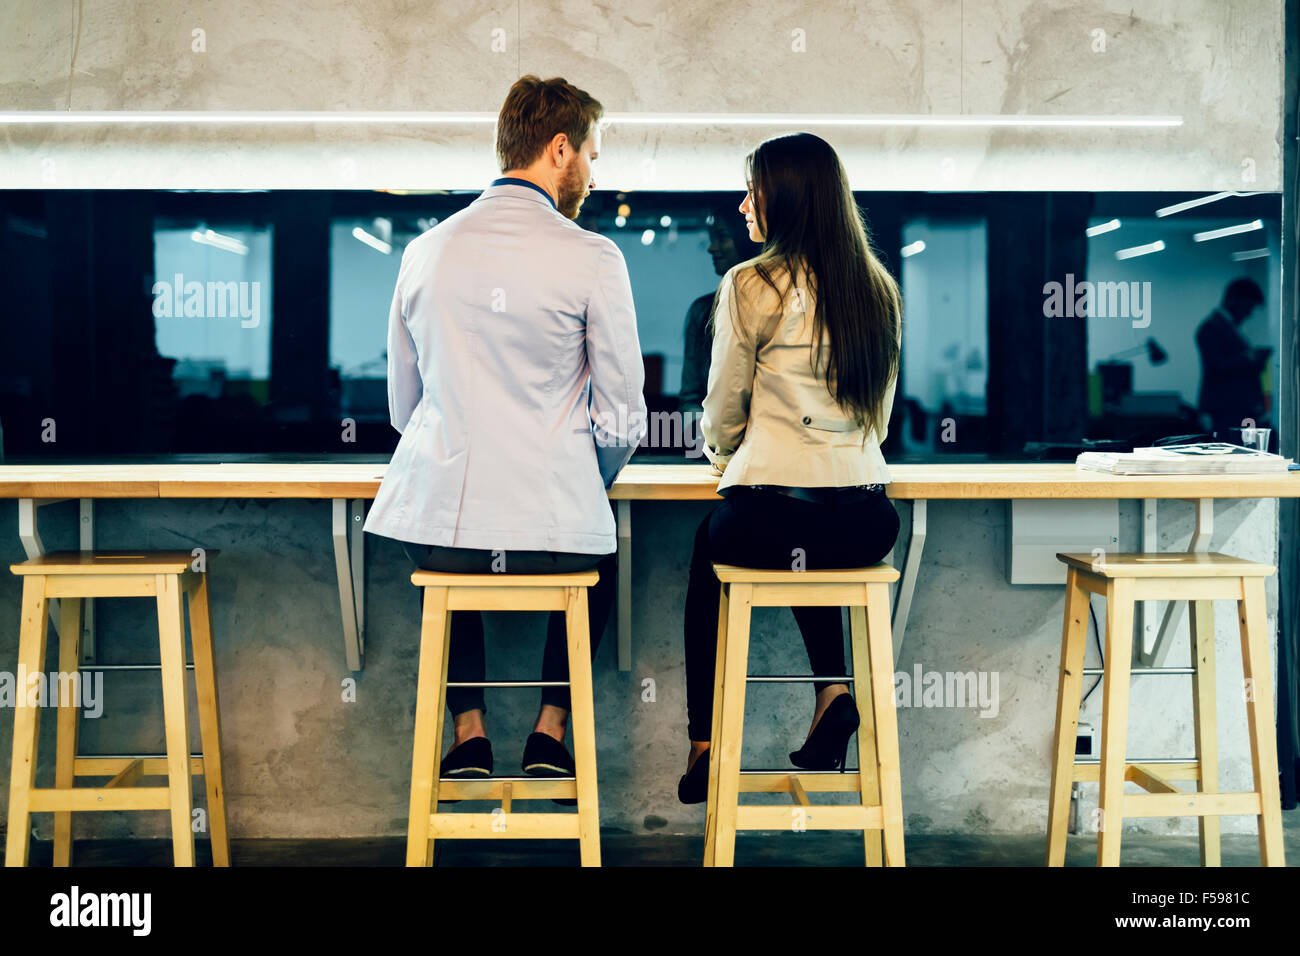 Young colleagues conversing during break hours in a restaurant - Stock Image